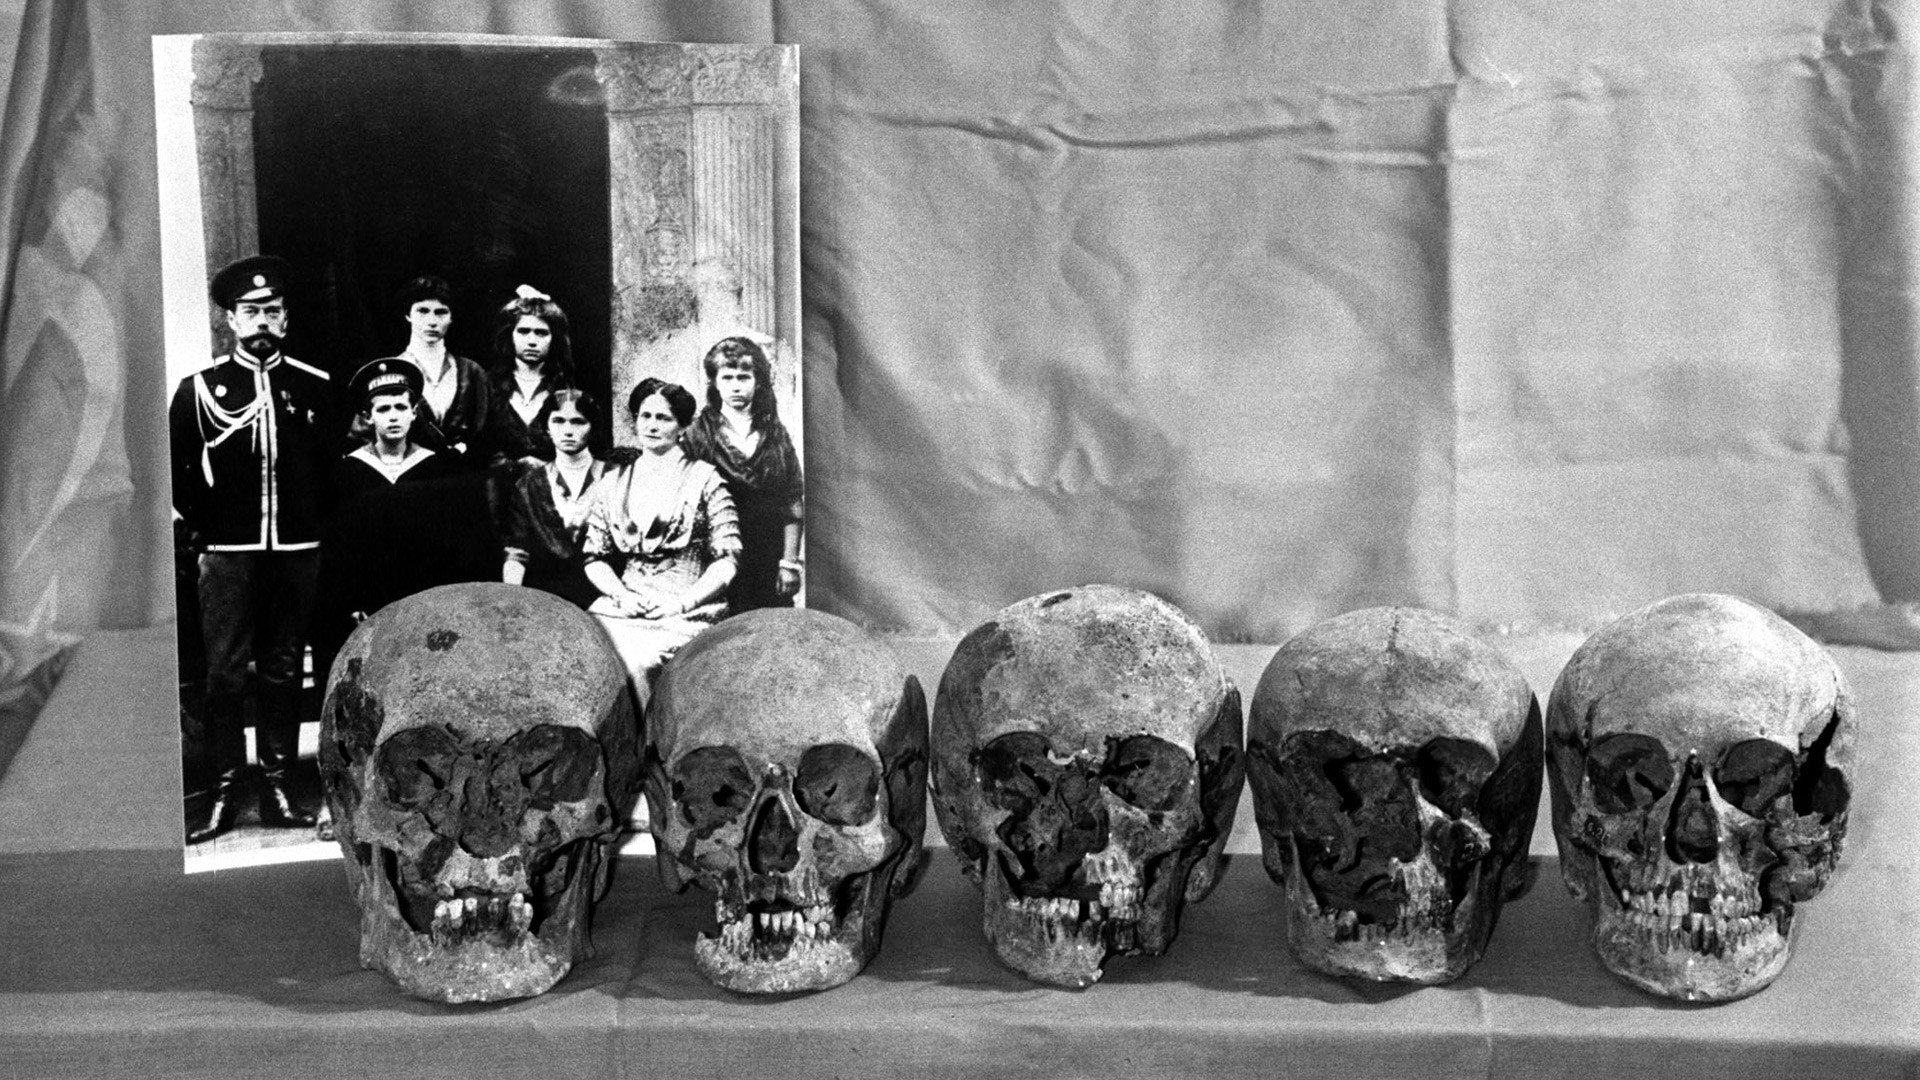 The skulls that supposedly belong to the killed Romanov family members